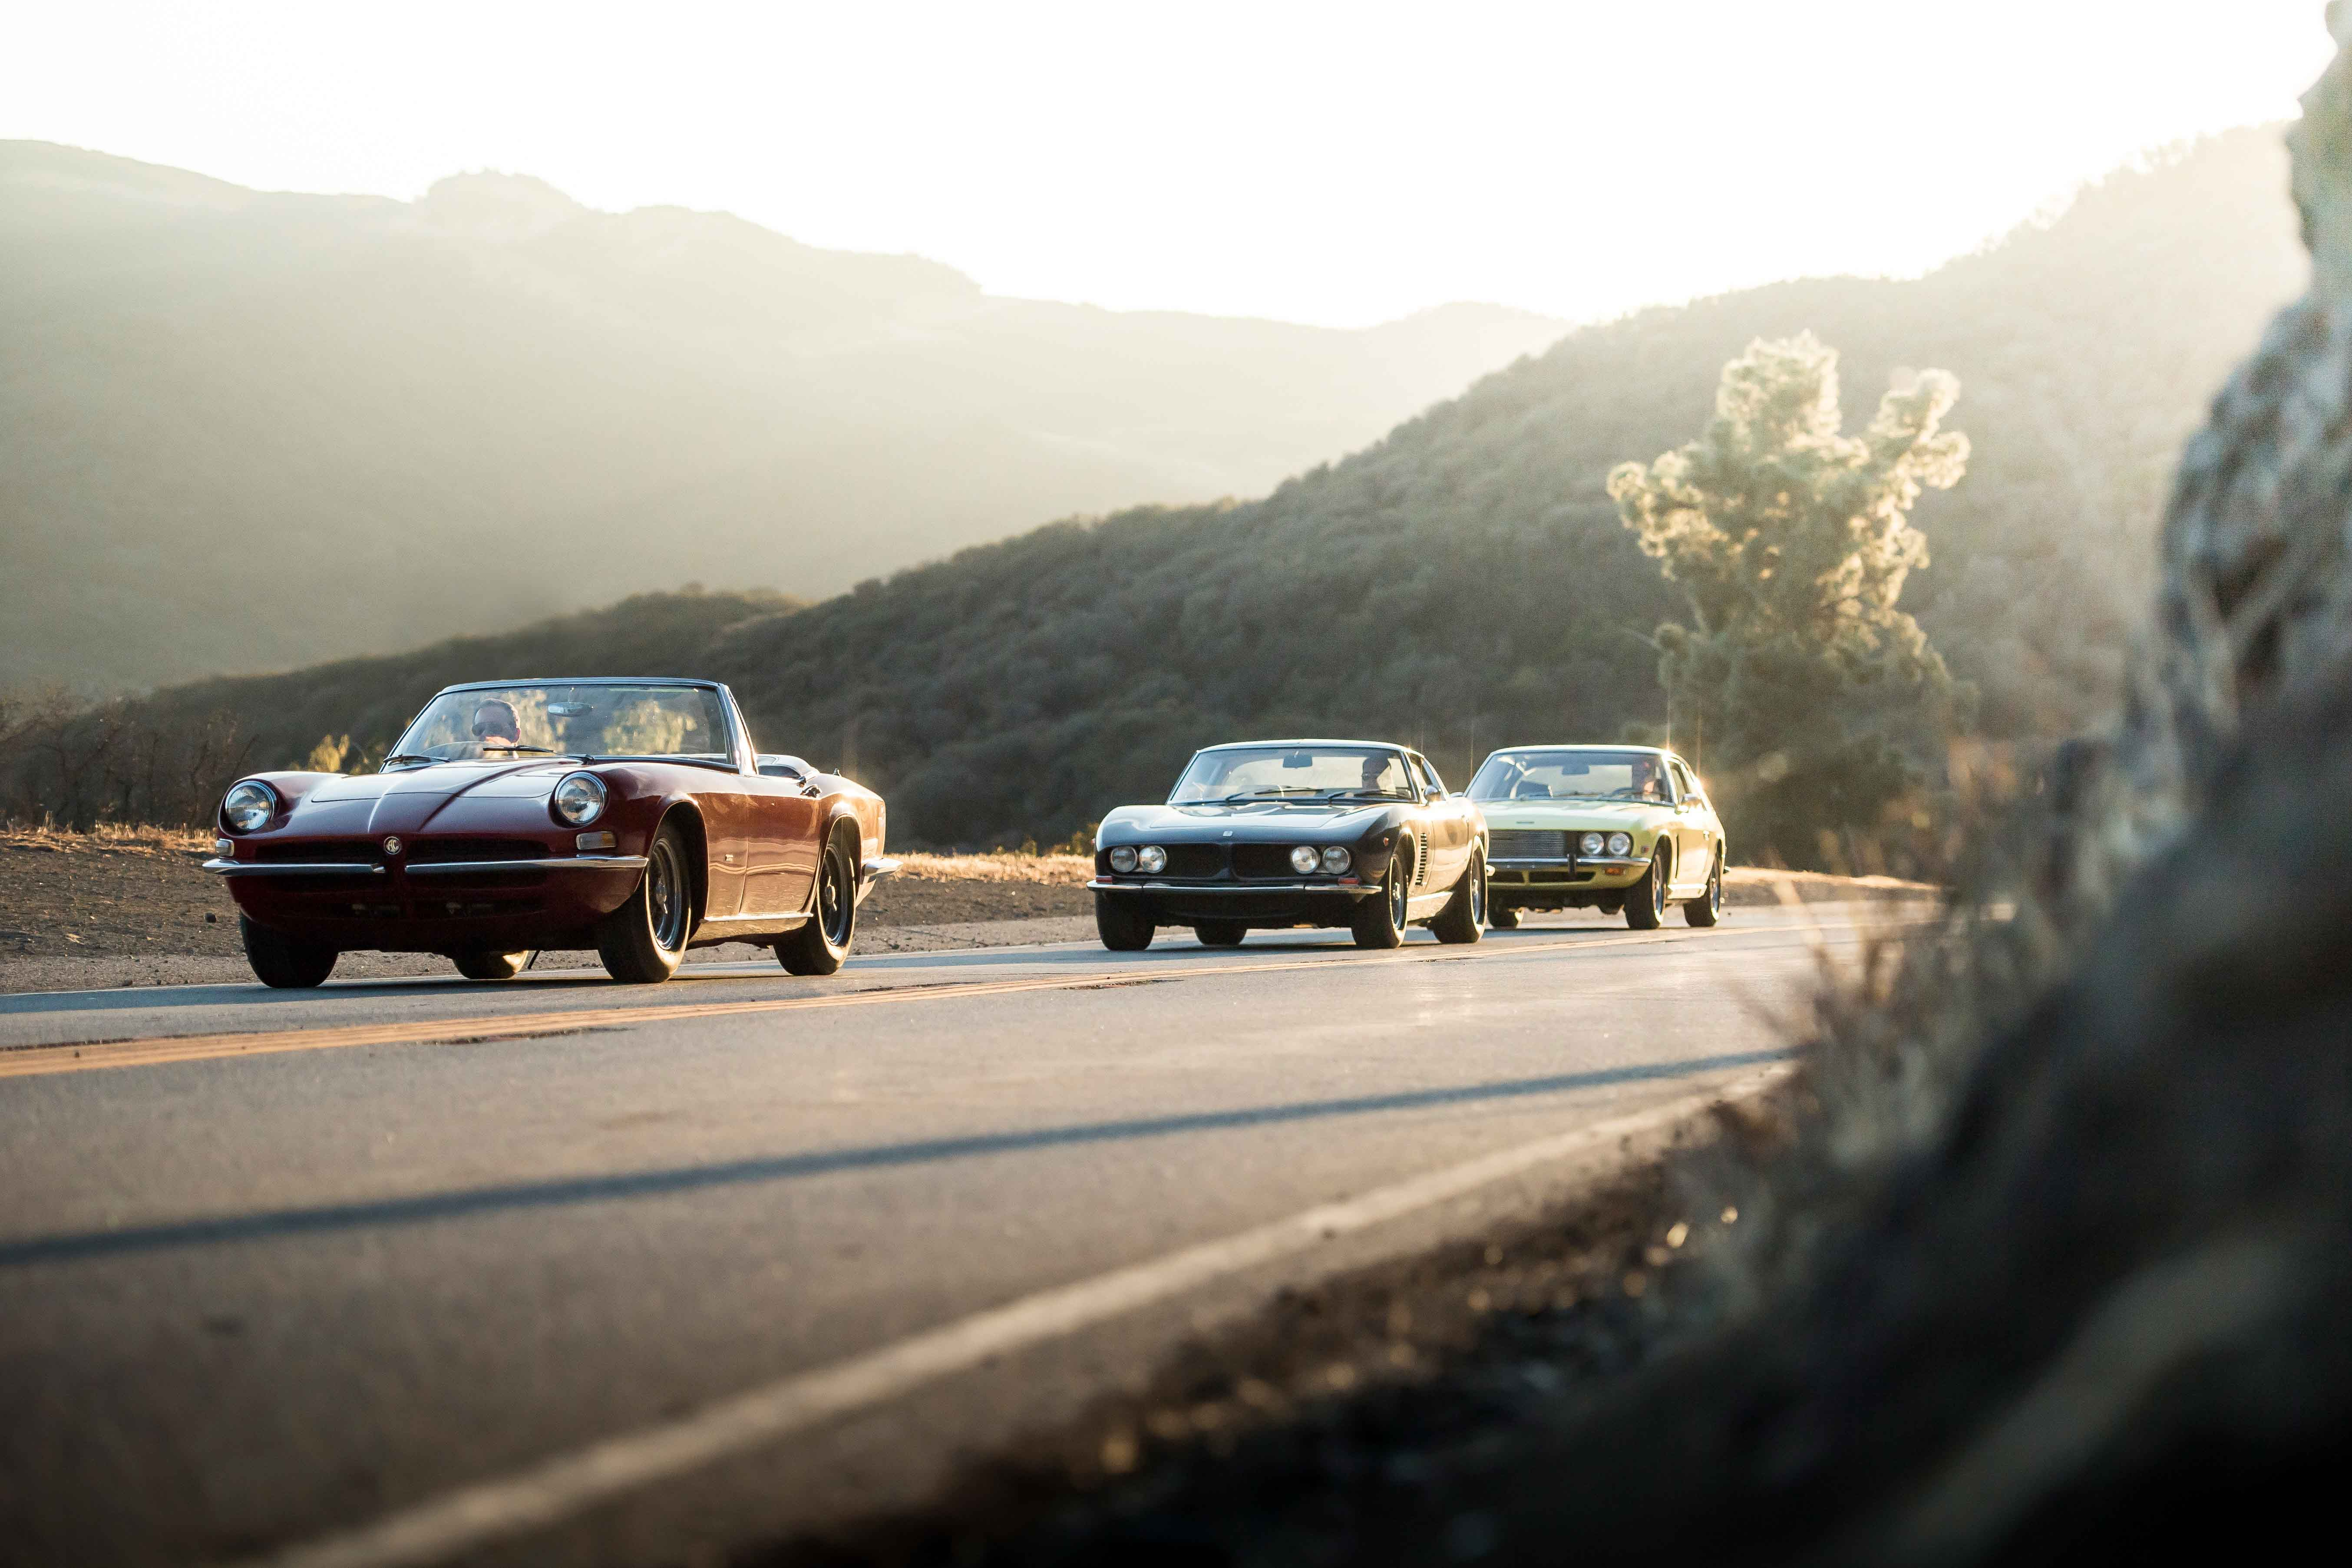 1965 AC 428 Leads the charge